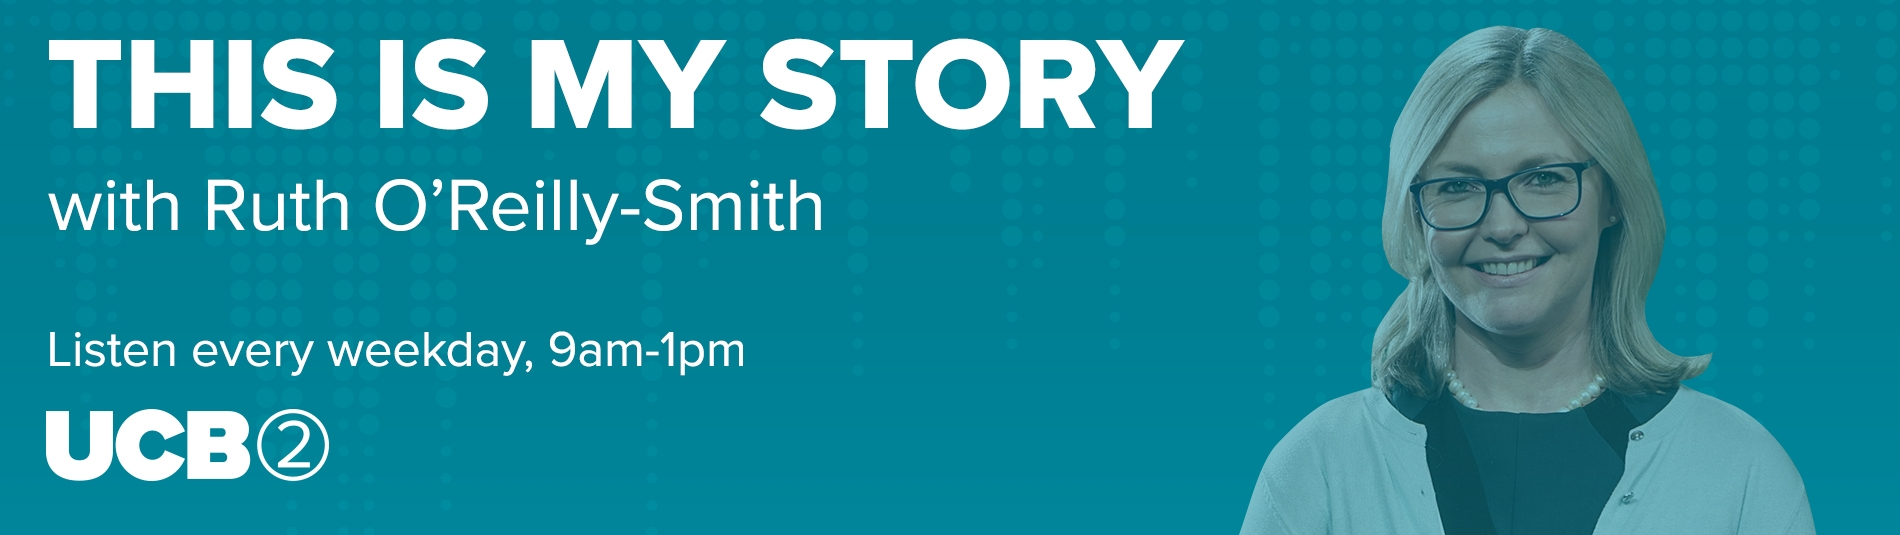 This is my story with Ruth O'Reilly Smith - Listen 9am-1pm UCB2